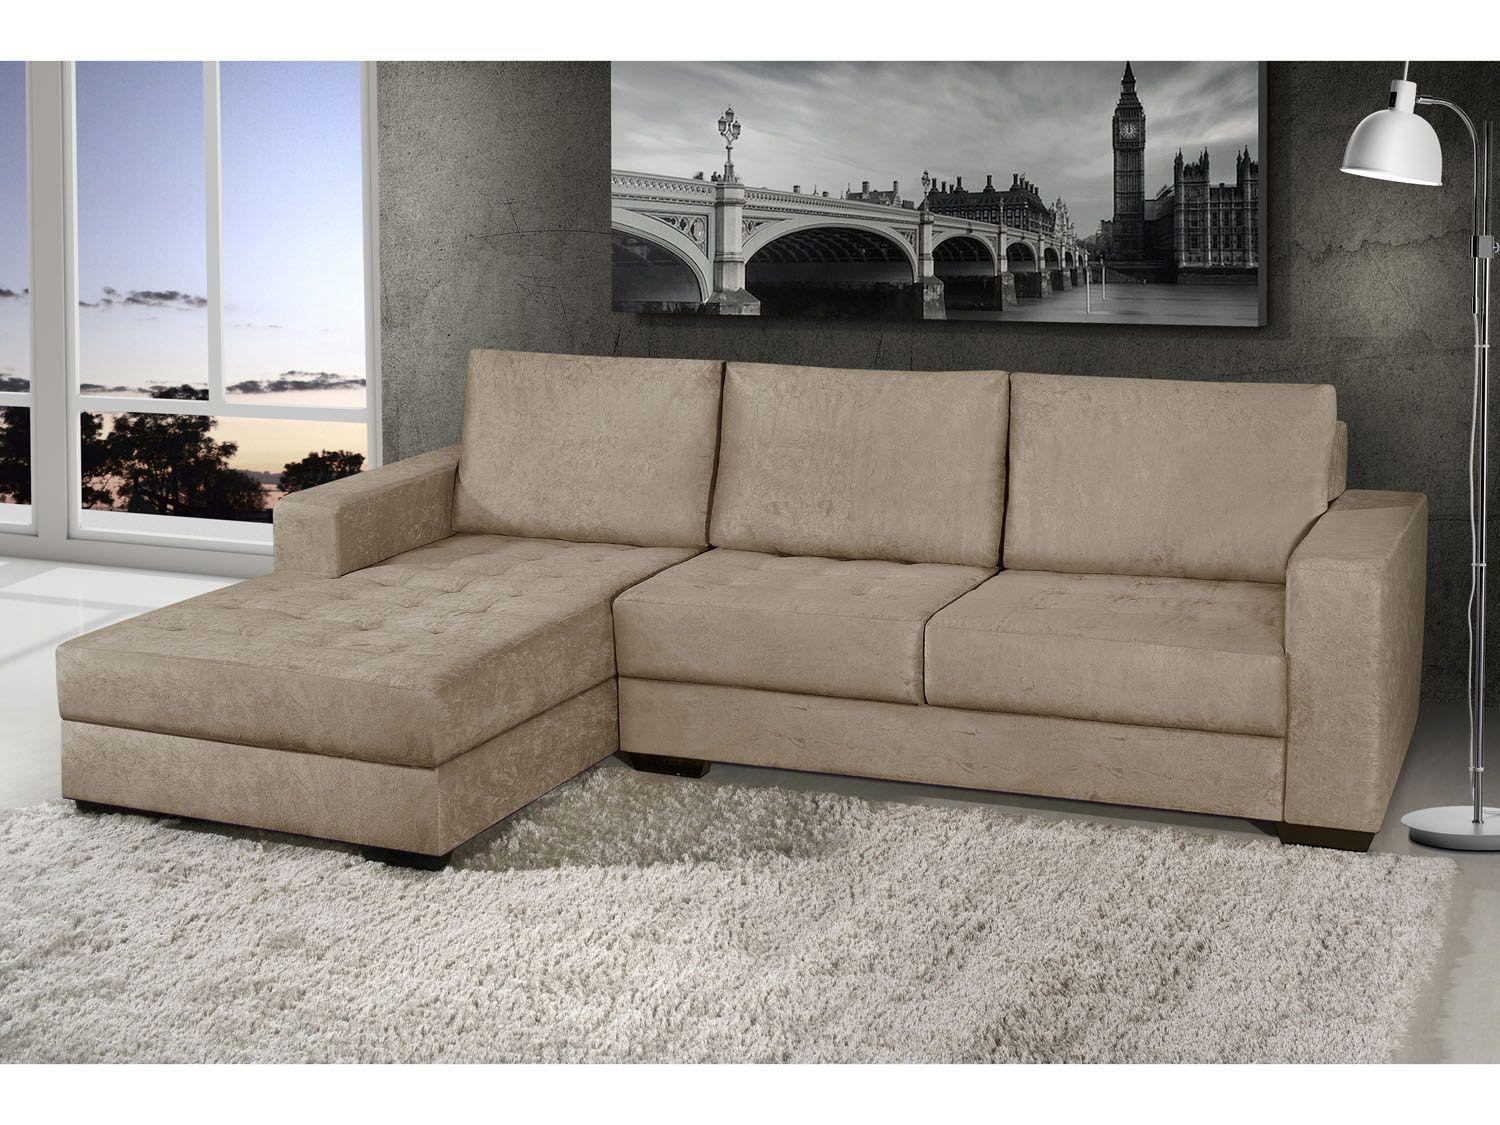 Sof chaise 2 lugares suede n pole american comfort for Sofa 02 lugares